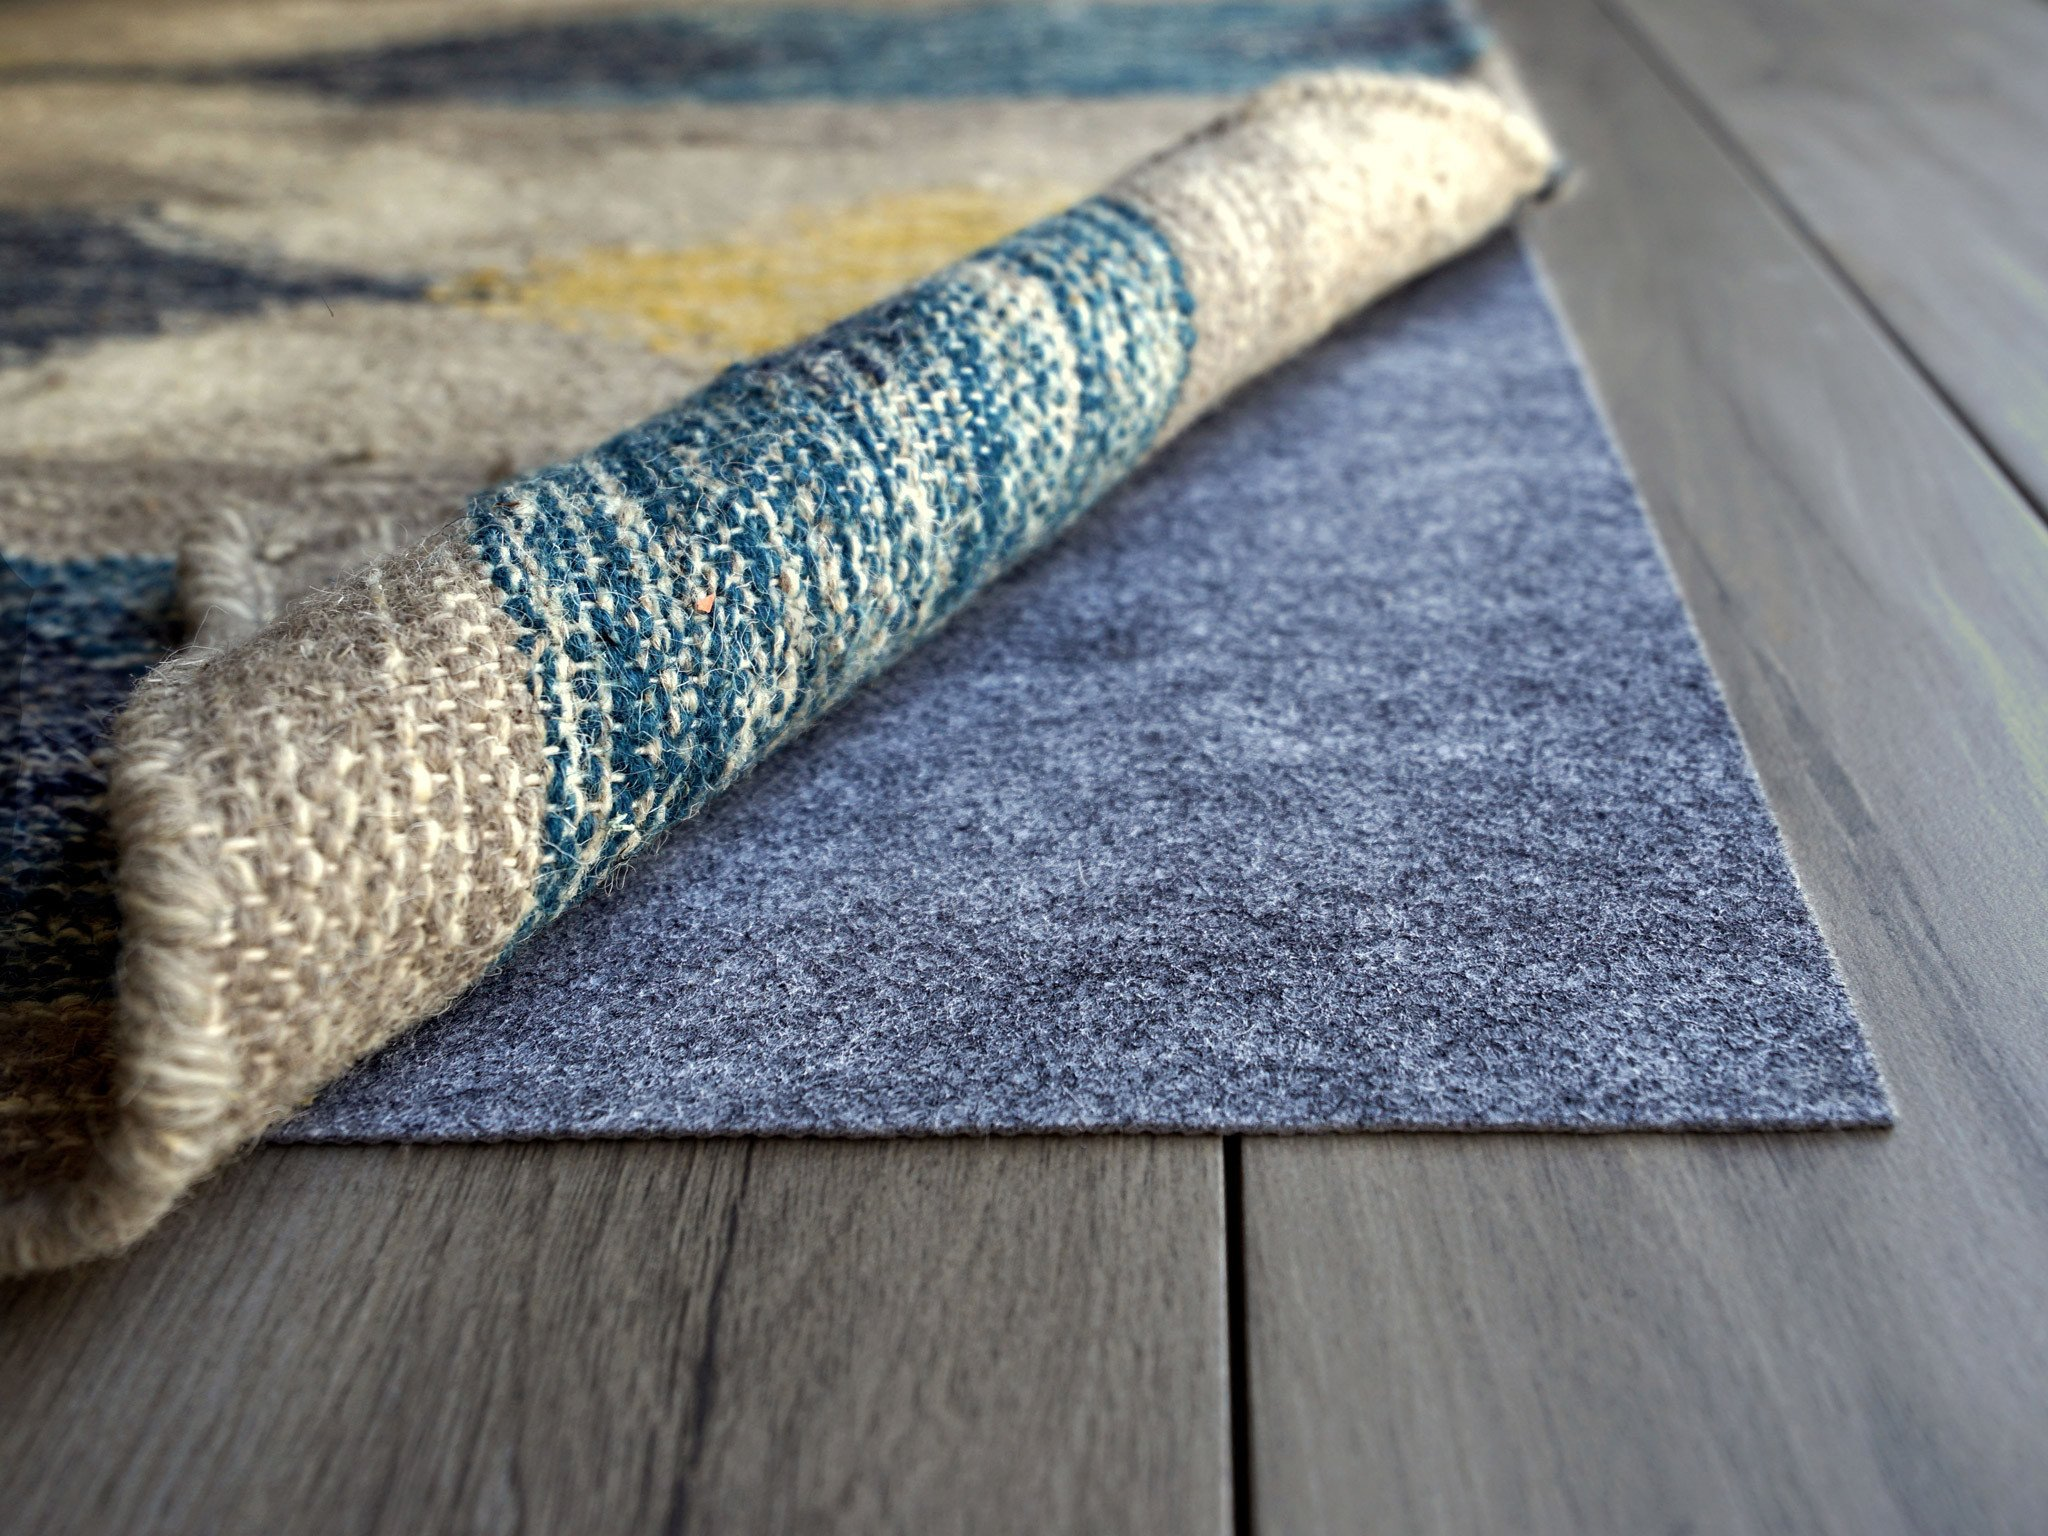 Rugpro Rug Pads Vacuum Felt And Wipe Down Rubber Backing With Lysol Wipe Ordered One For Kitchen Rug Rubber Rugs Rug Pad Rugs